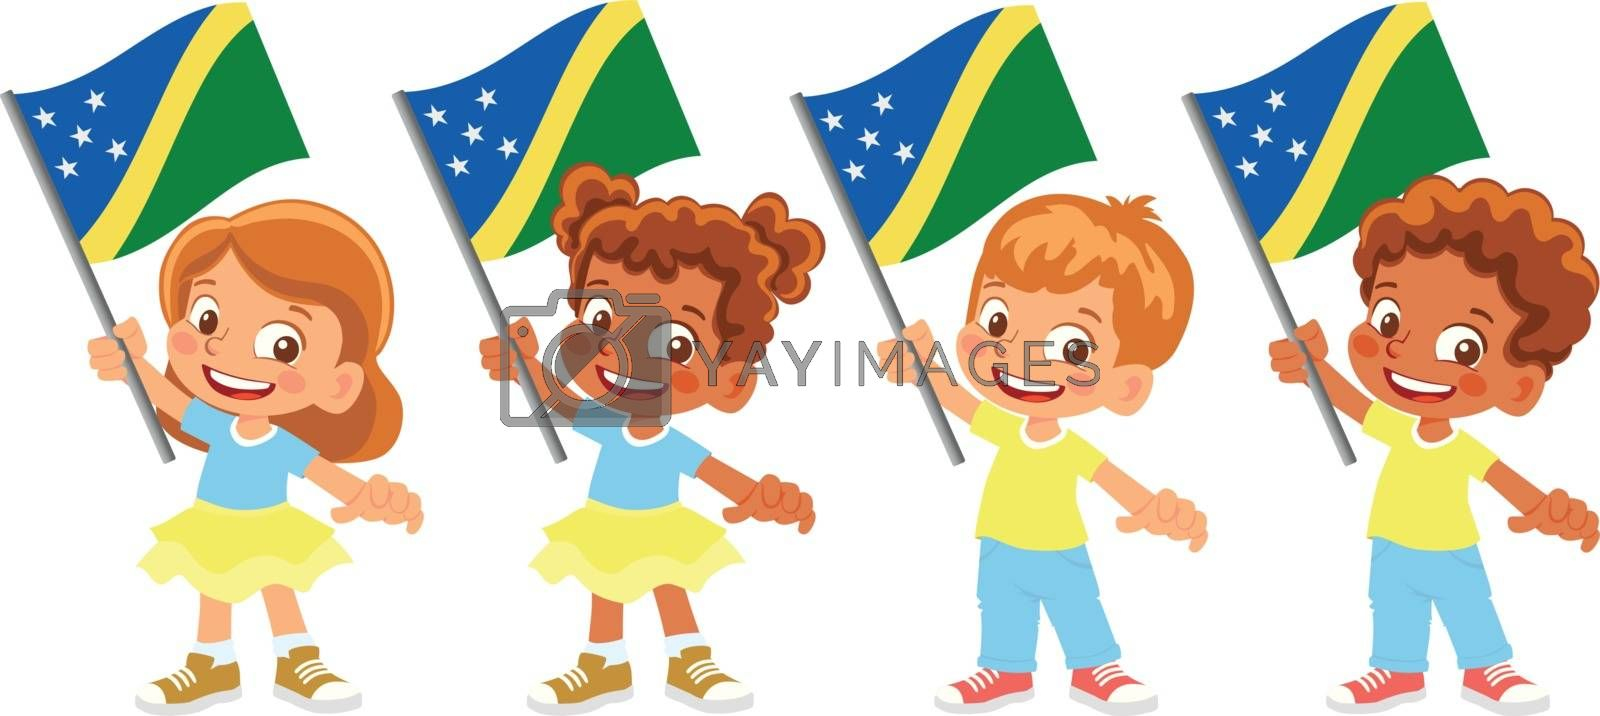 Solomon Islands flag in hand. Children holding flag. National flag of Solomon Islands vector